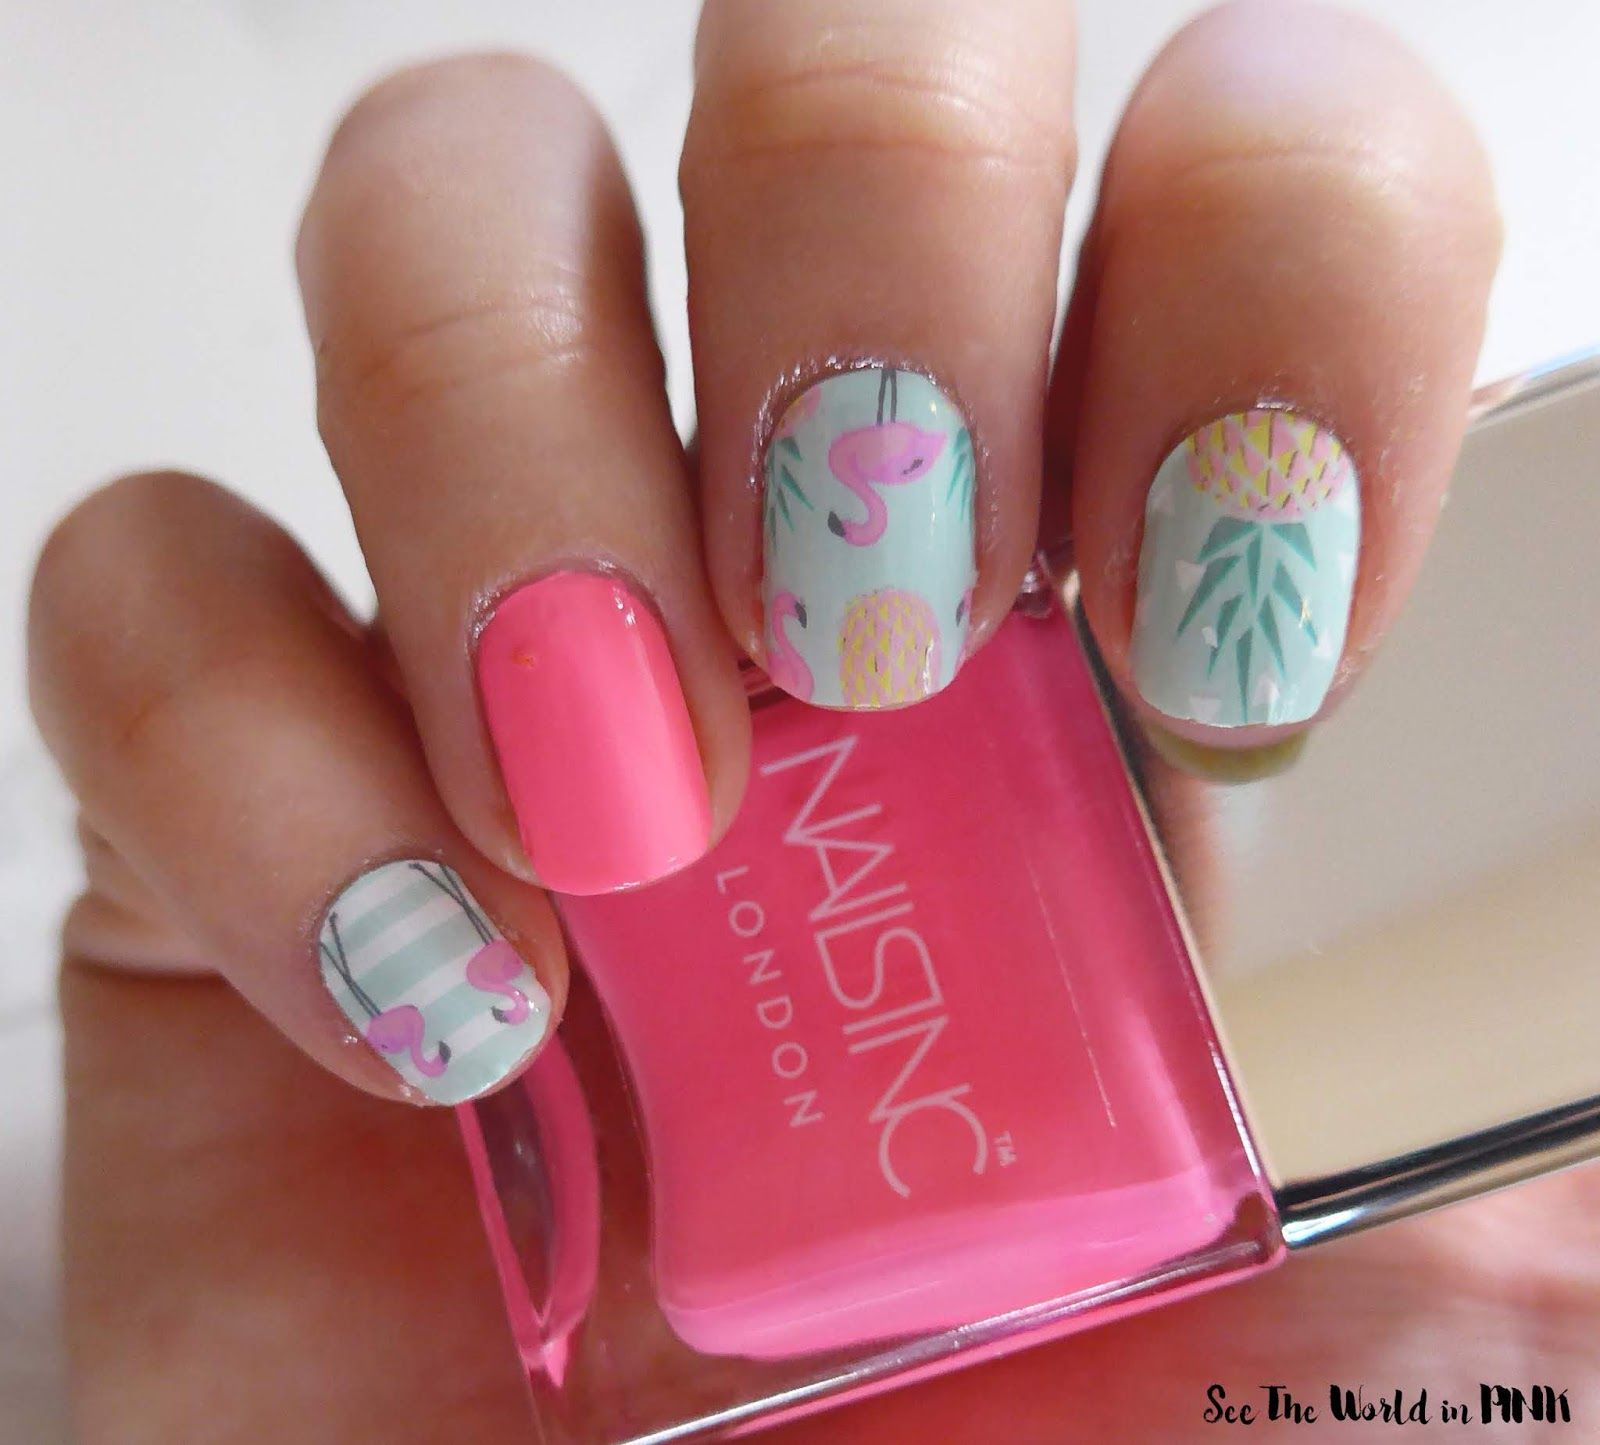 Manicure Monday - Glamingo Flamingo Nails